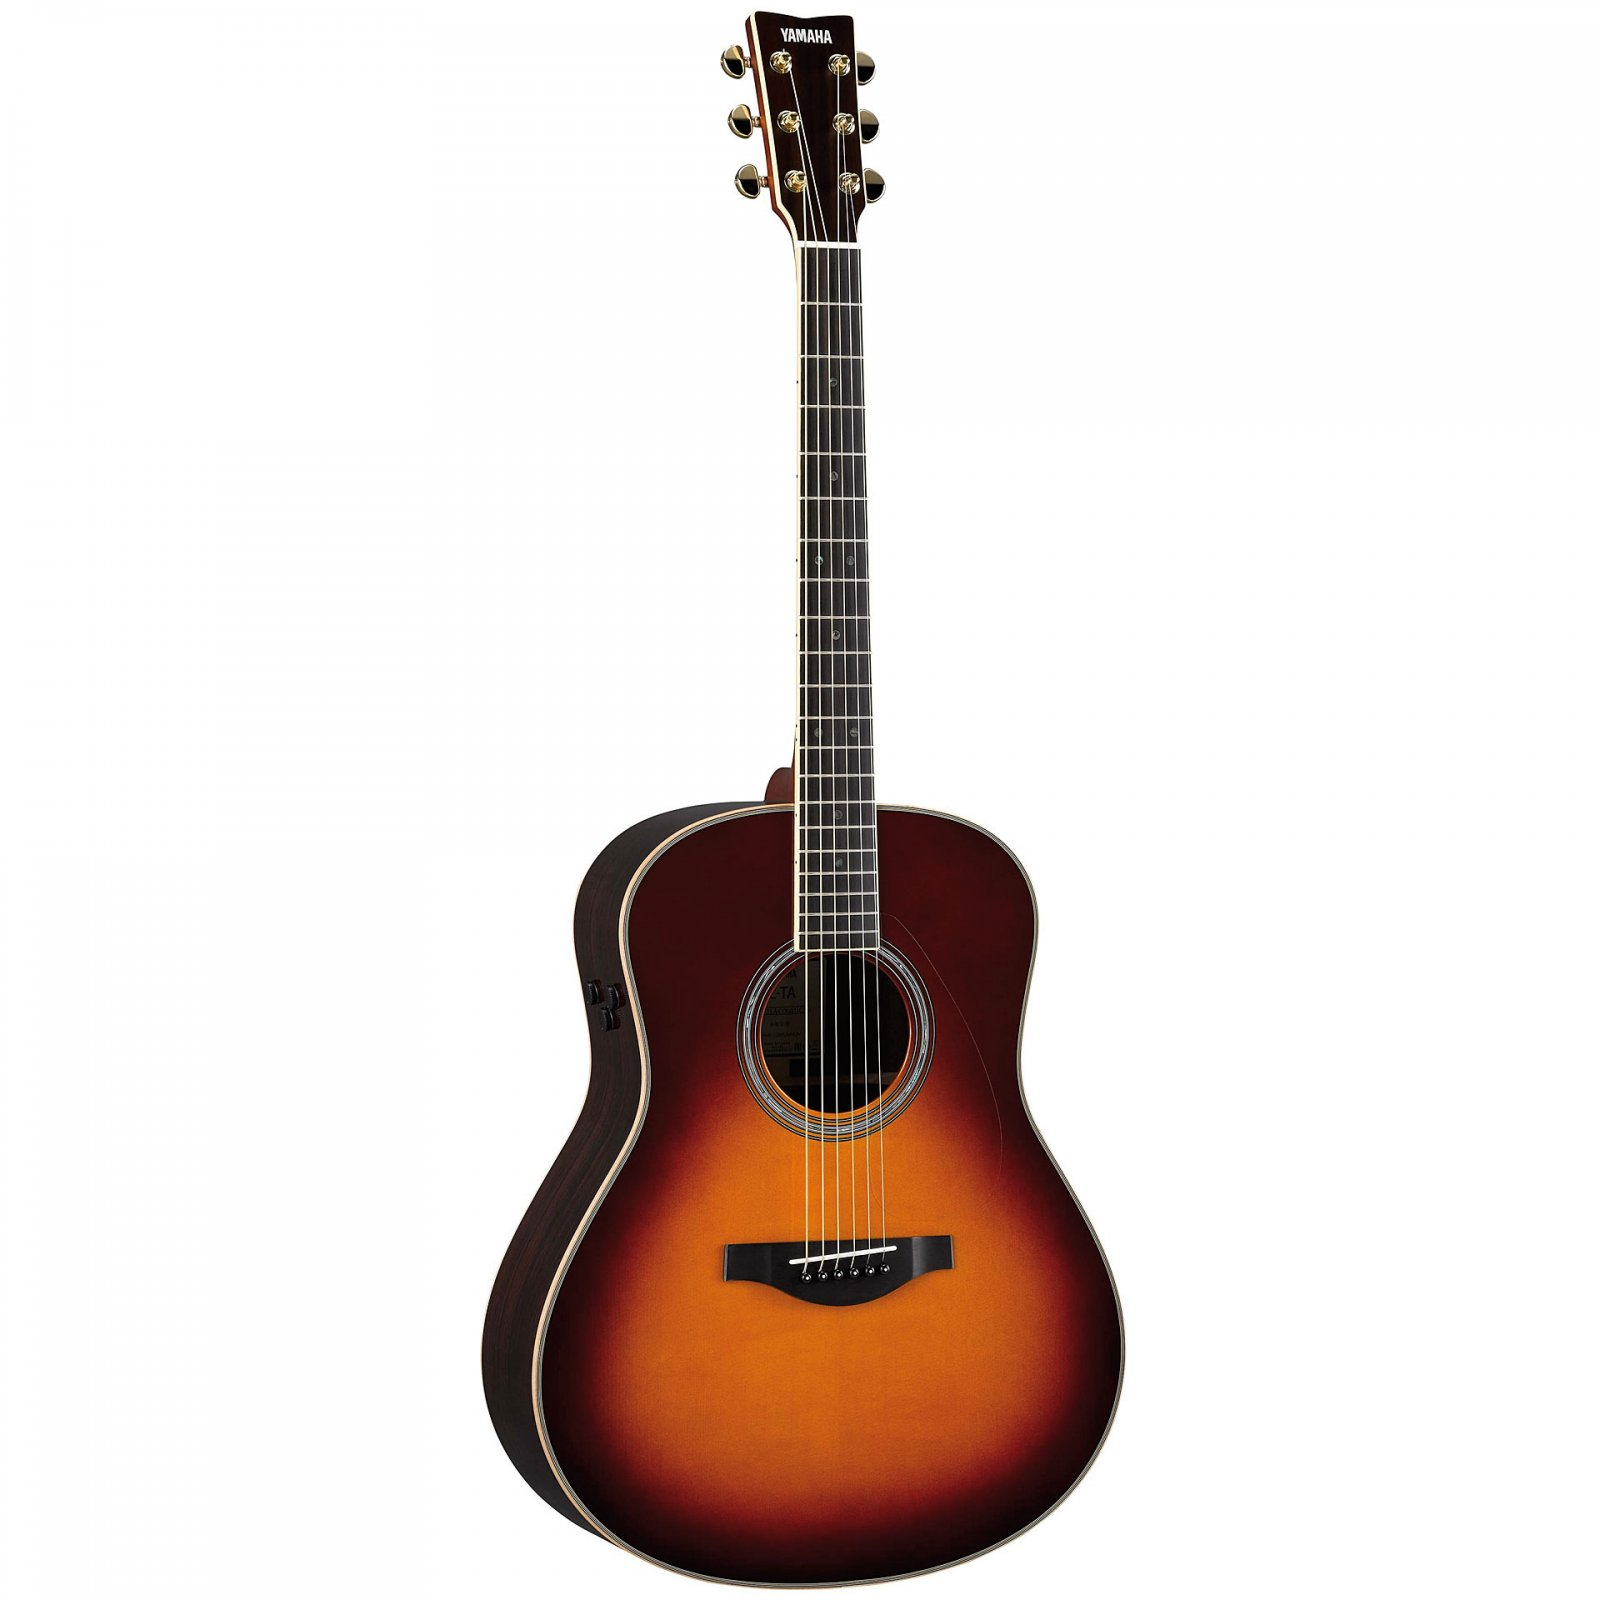 Yamaha Trans-Acoustic Concert Guitar w/Solid Engleman Spruce Top w/ARE, Solid Rosewood B/S, Brown Sunburst w/HardBag,